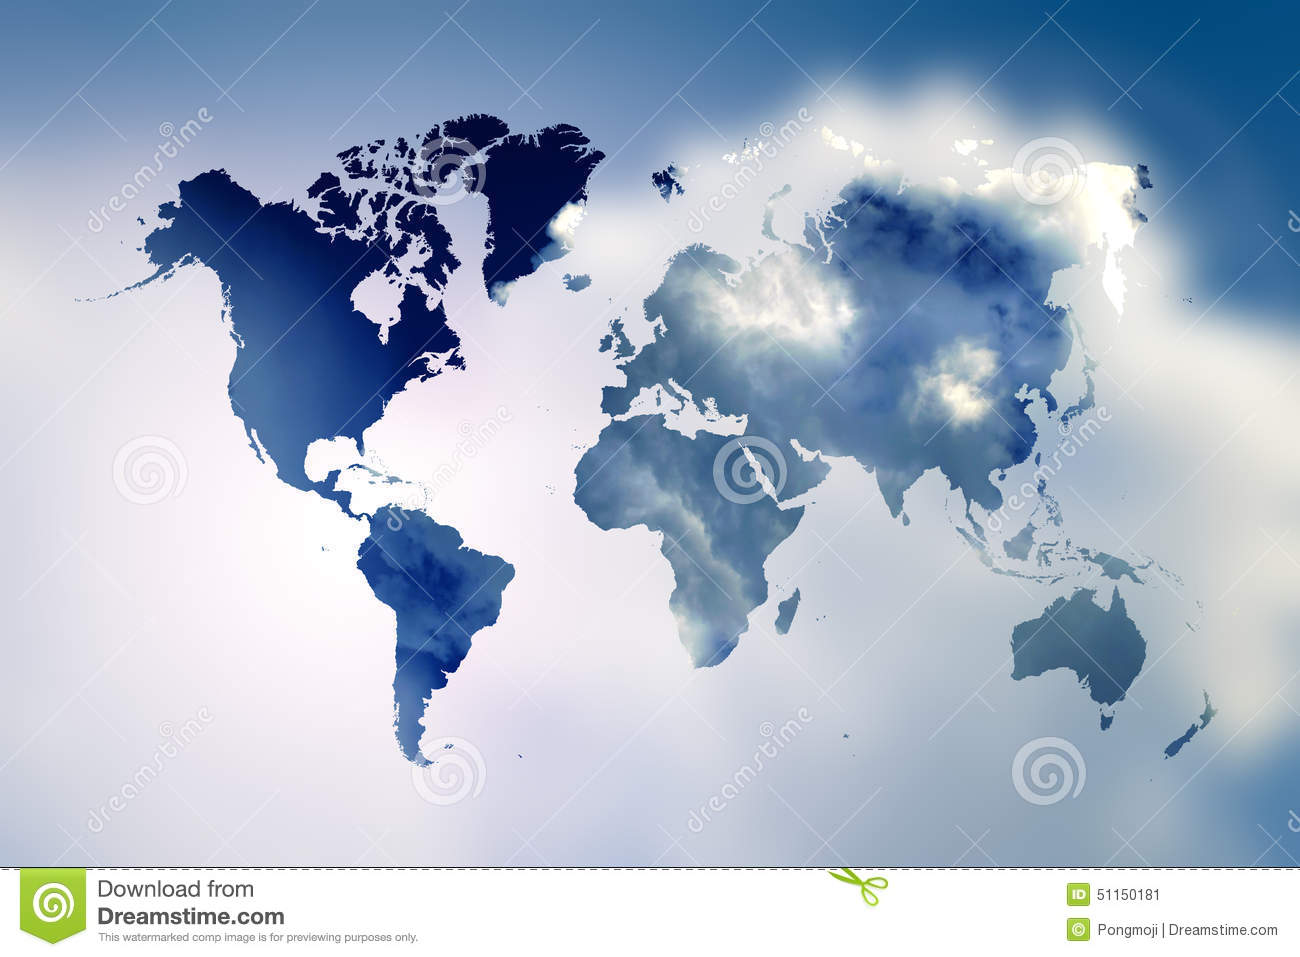 Blurred flare blue sky with world map stock illustration blurred flare blue sky with world map gumiabroncs Image collections